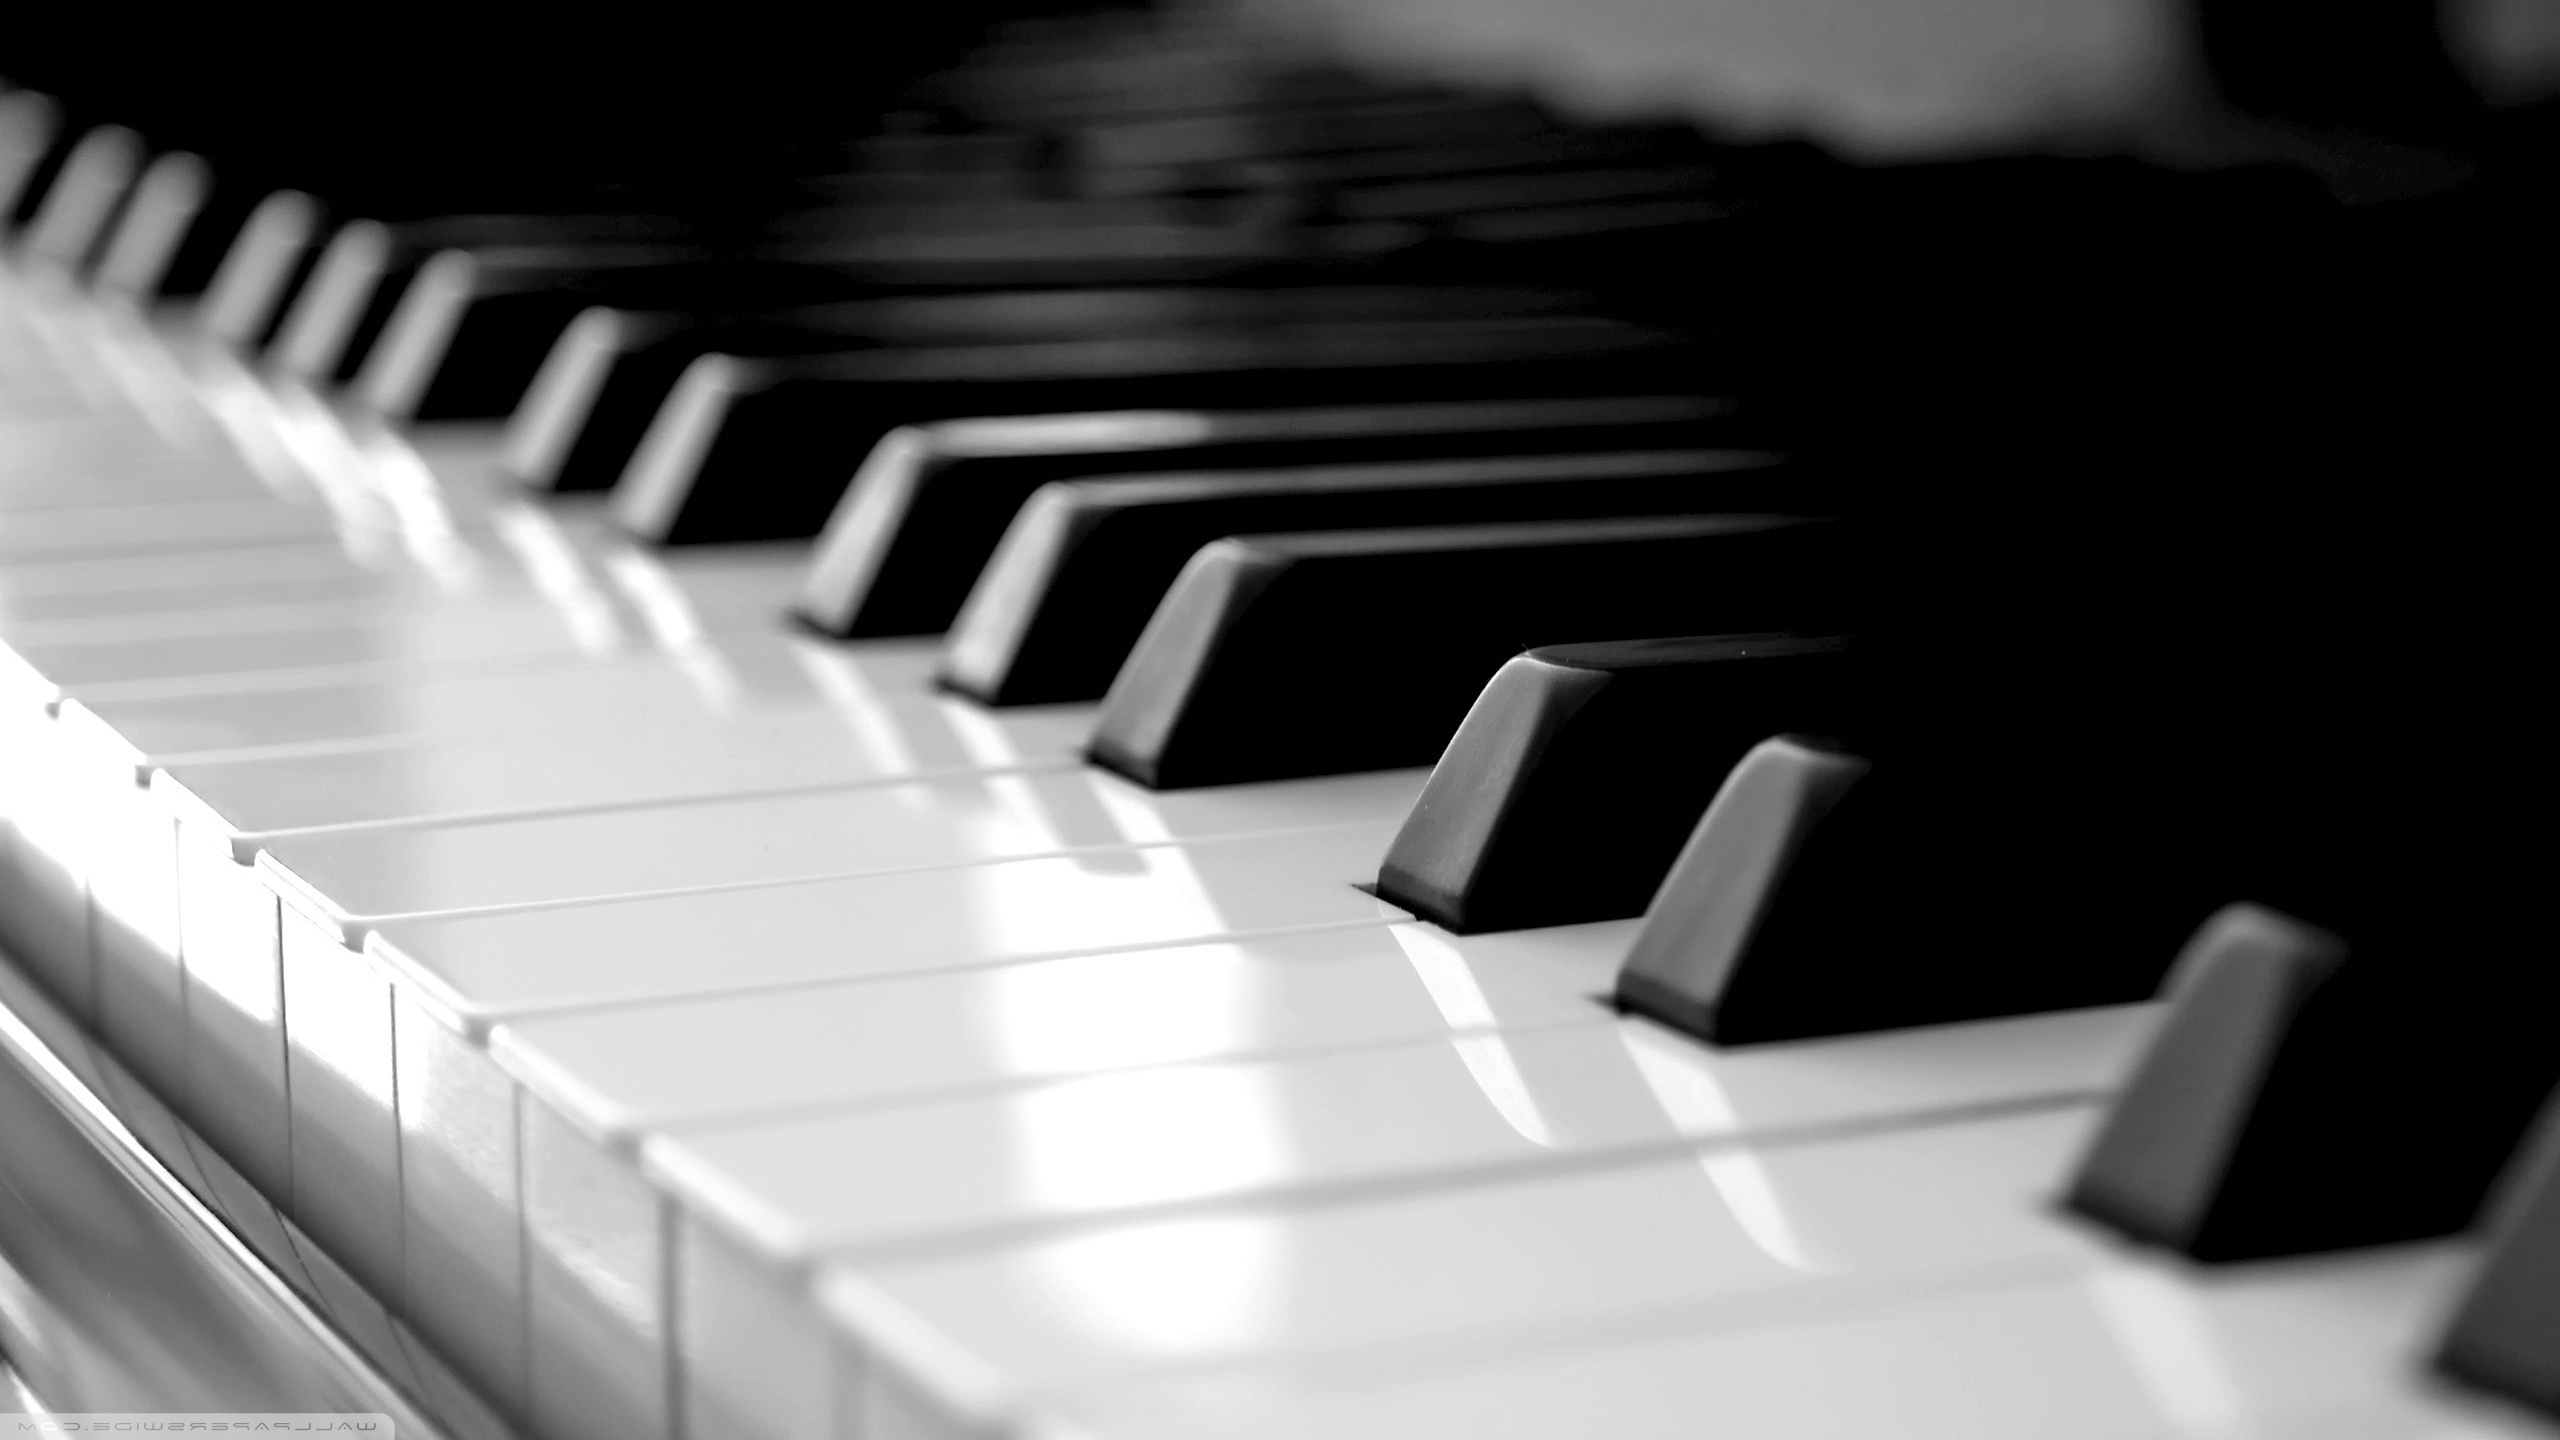 Cell Phone Wallpaper Girls Download Grand Piano Wallpaper Hd Gallery